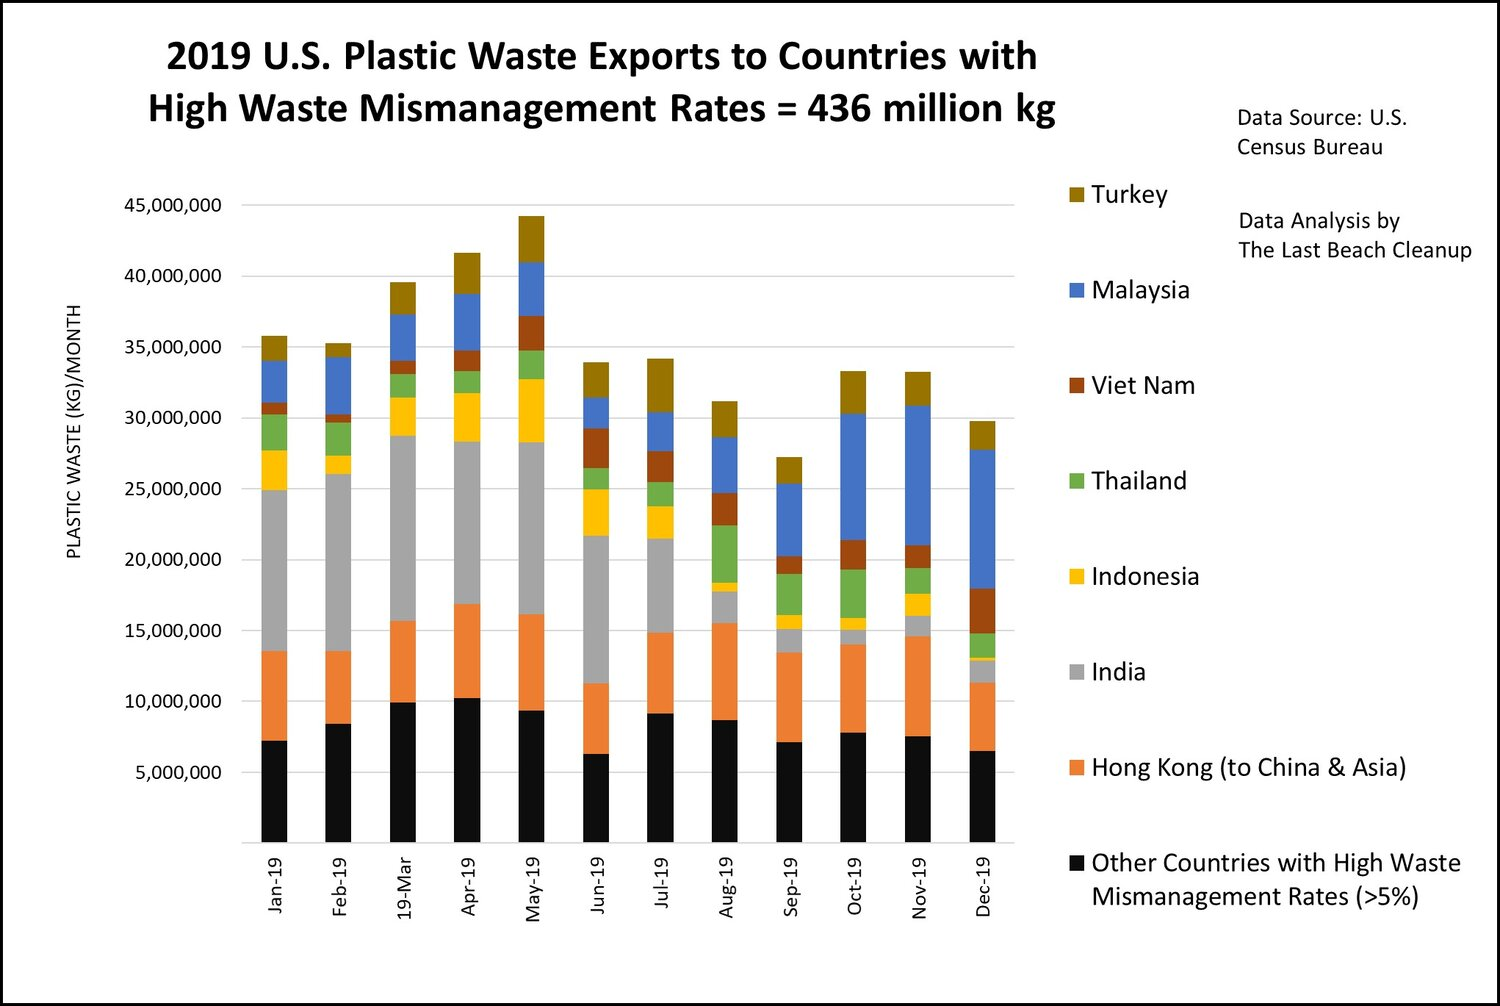 A 2019-report showing United States' plastic waste exports to other countries. Comparing January 2020 to January 2021 figures, the amount of U.S. plastic waste exports increased slightly from 25,200 to 25,700 metric tons, according to BAN. Image courtesy of Plastic Waste Coalition.